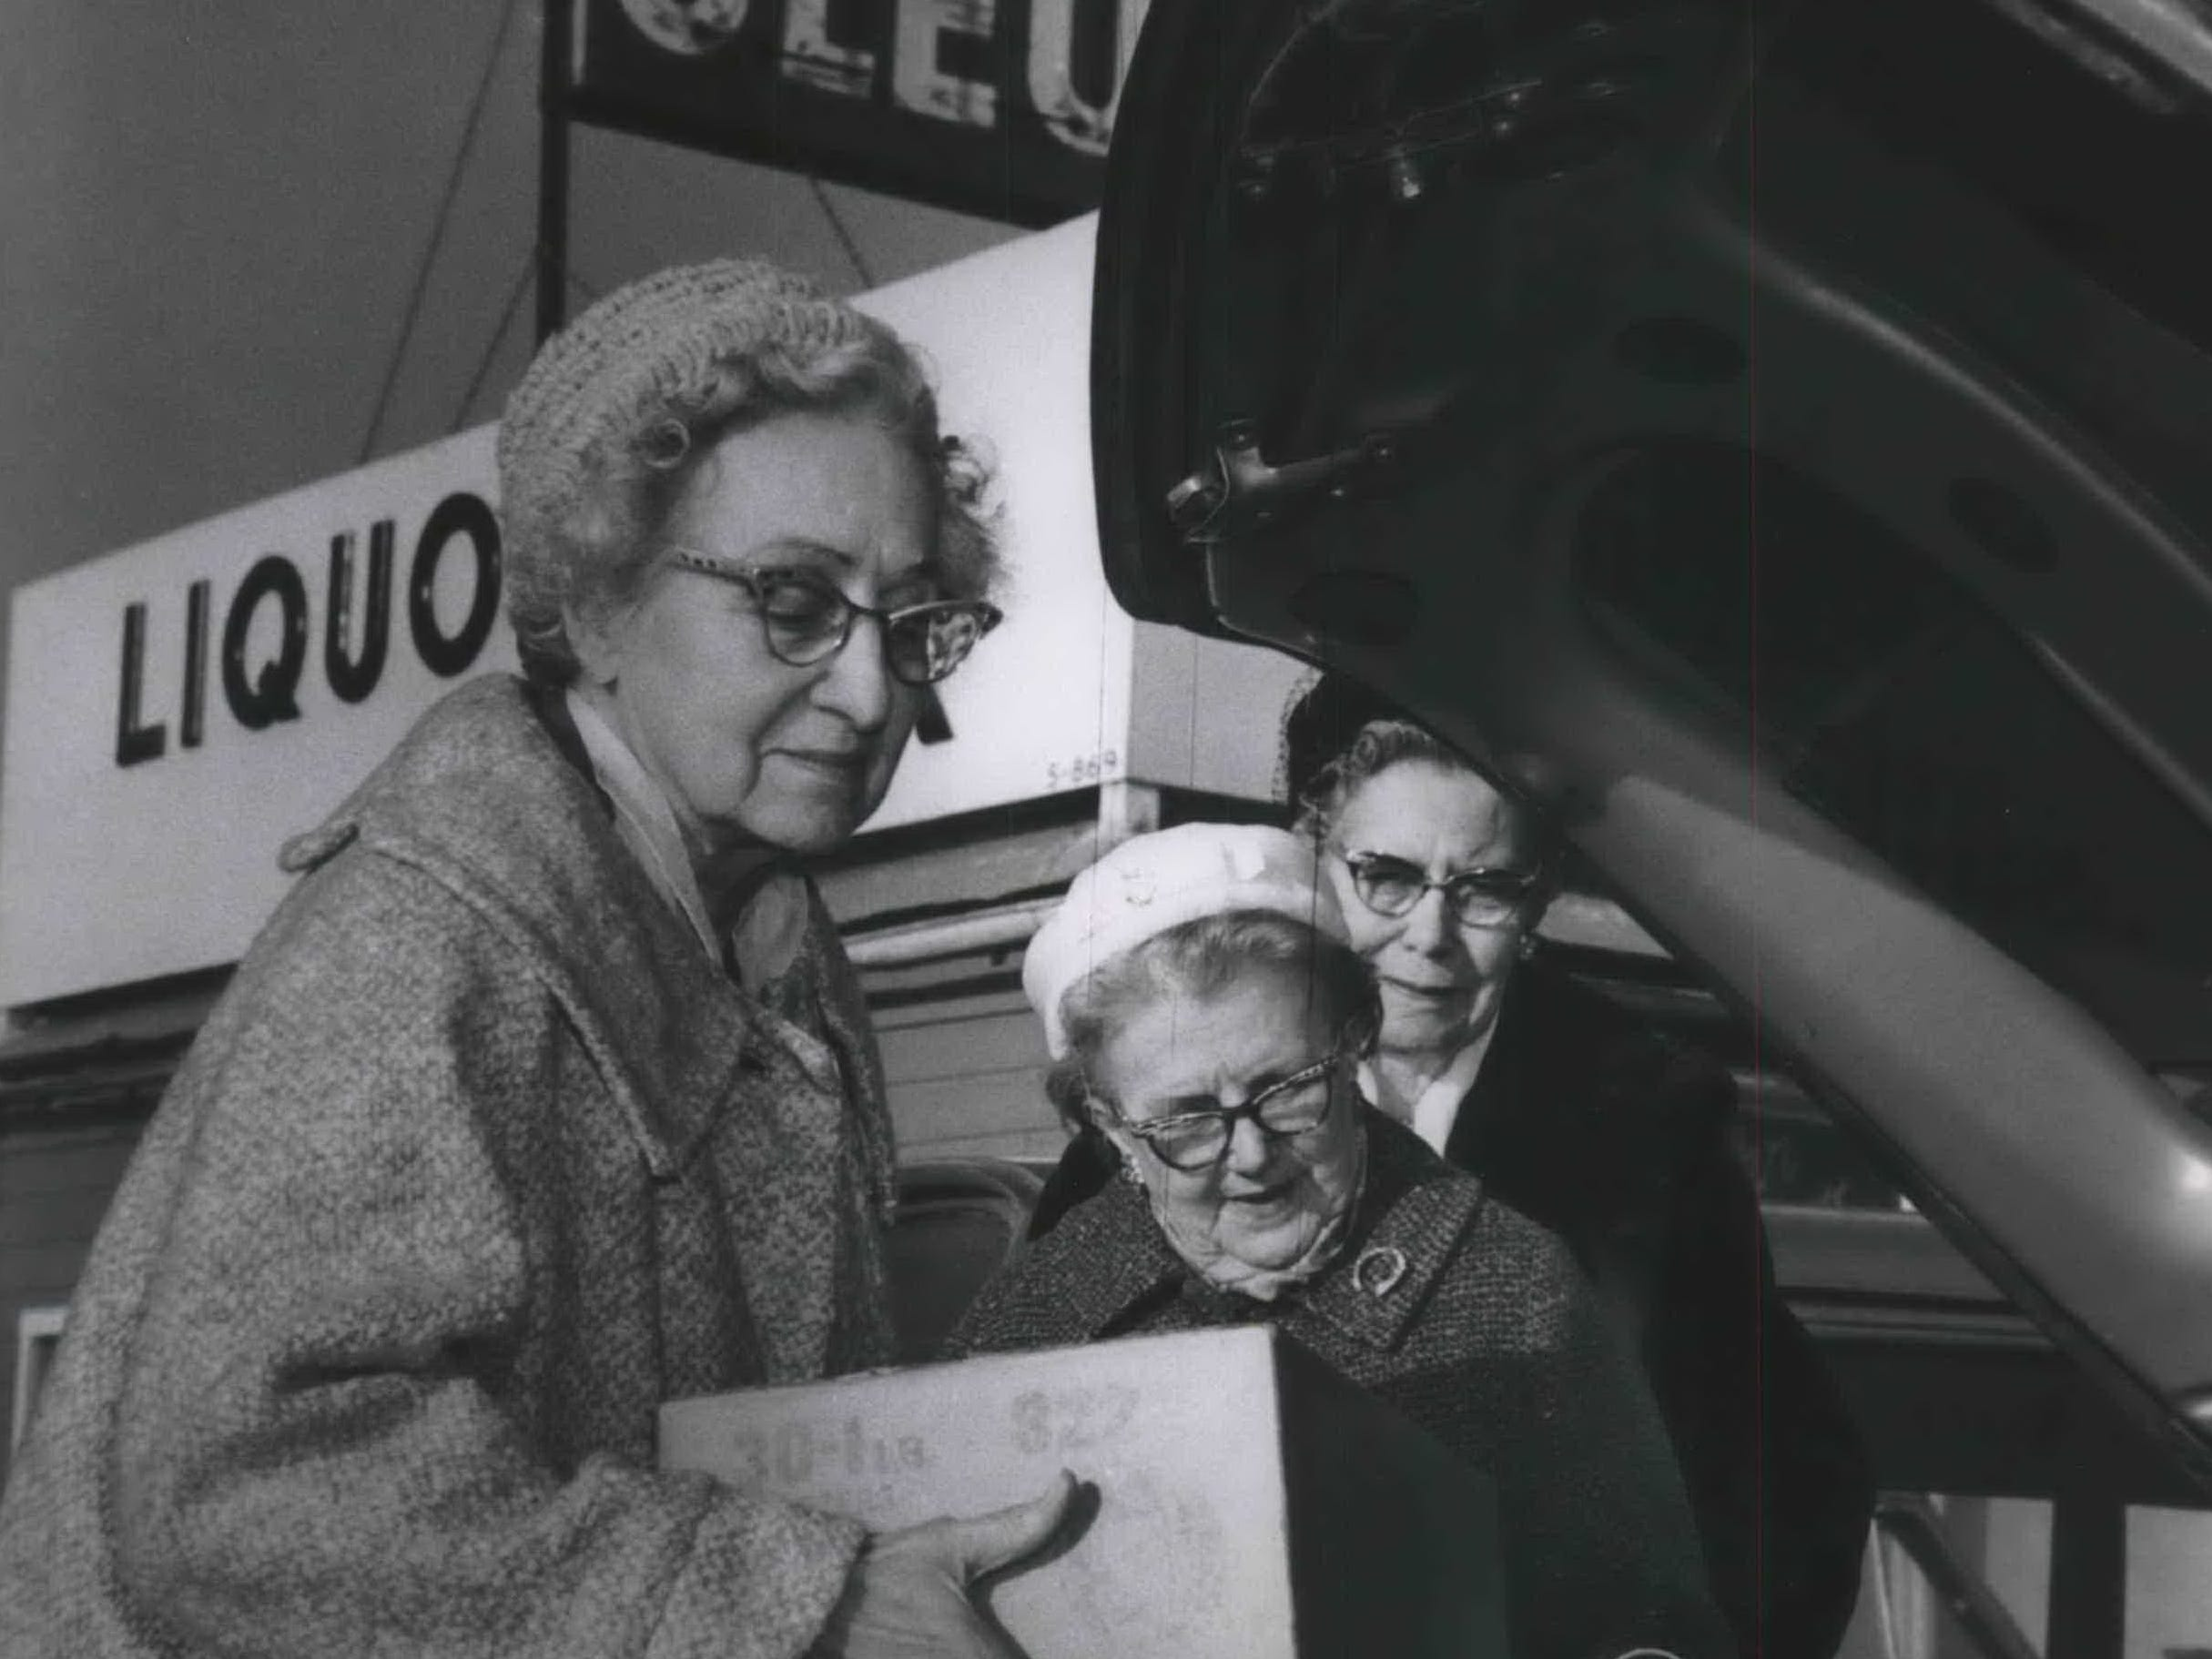 1967: The Dairy lobby fought the introduction of oleo, or margarine, since the late 1800s. Among the methods used by states included banning it outright, banning the use of yellow food coloring, forcing oleo manufacturers to use an unappealing pink color and imposing hefty sales taxes. Wisconsin made it a crime to sell oleo, but consumers routinely crossed into neighboring states to get their fill. By 1967, Wisconsin finally was pressured to repeal the ban. However, the ban lives on today in restaurants where butter is the default and margarine is only supplied upon request. In 1964, this trio from the Wisconsin Federation of Women's Clubs loaded a car trunk with cases of oleo outside an Illinois supermarket near the state border.